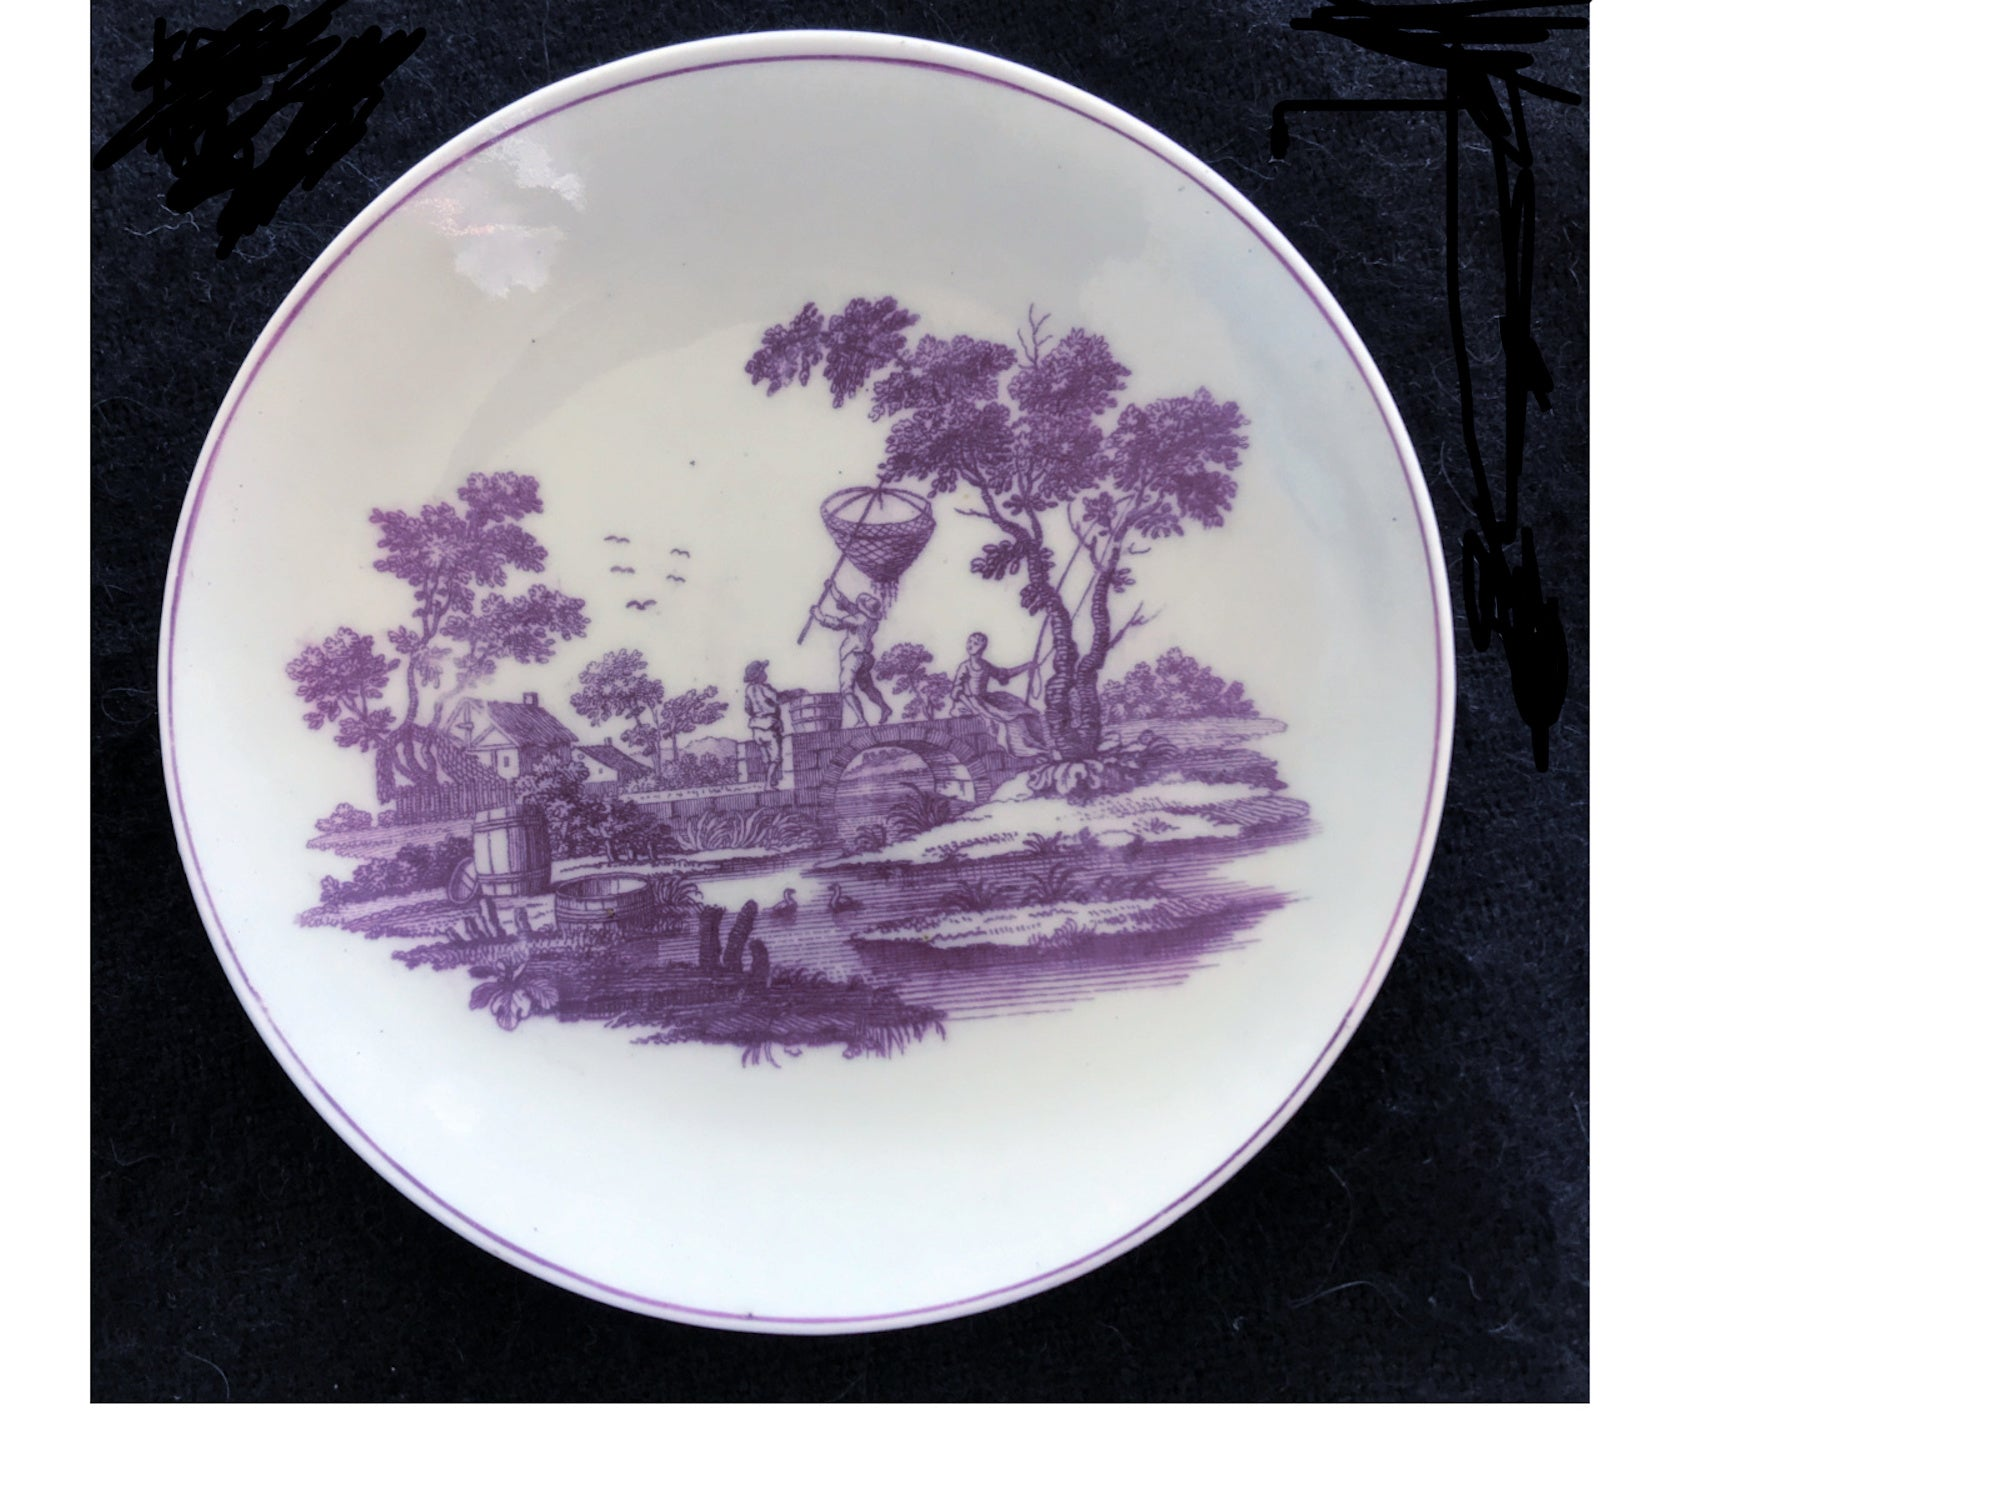 SOLD 18th Century Worcester Porcelain Teabowl and Saucer, Printed in Purple.